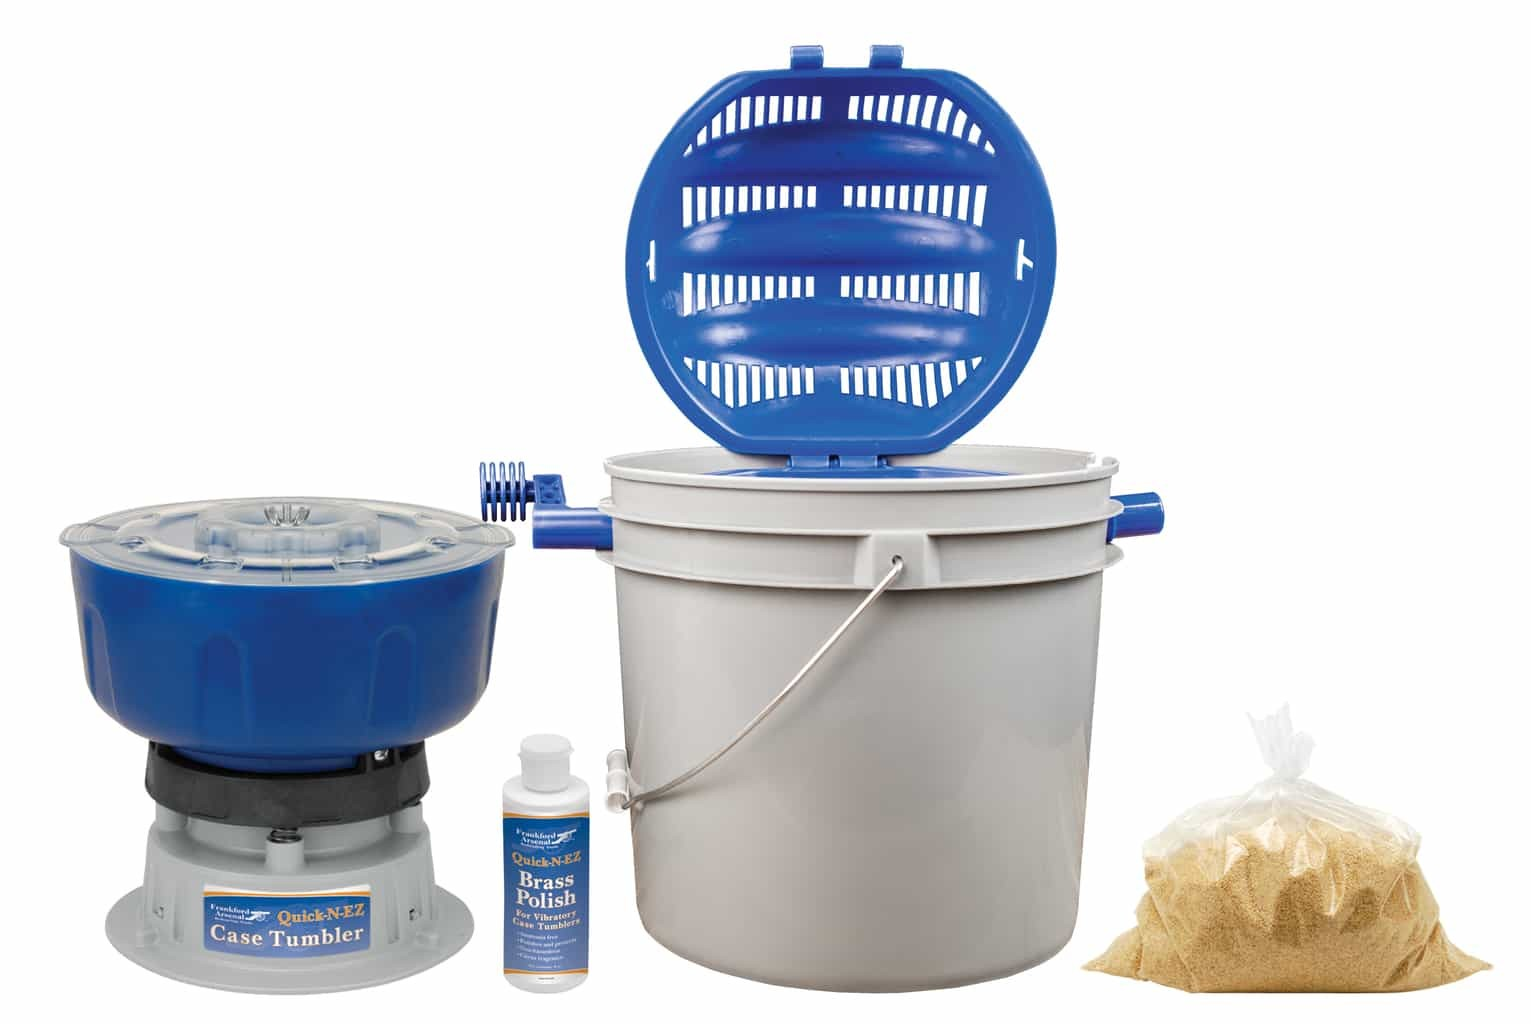 Frankford Arsenal Quick-N-EZ Vibratory Tumbler & Rotary Sifter Kit